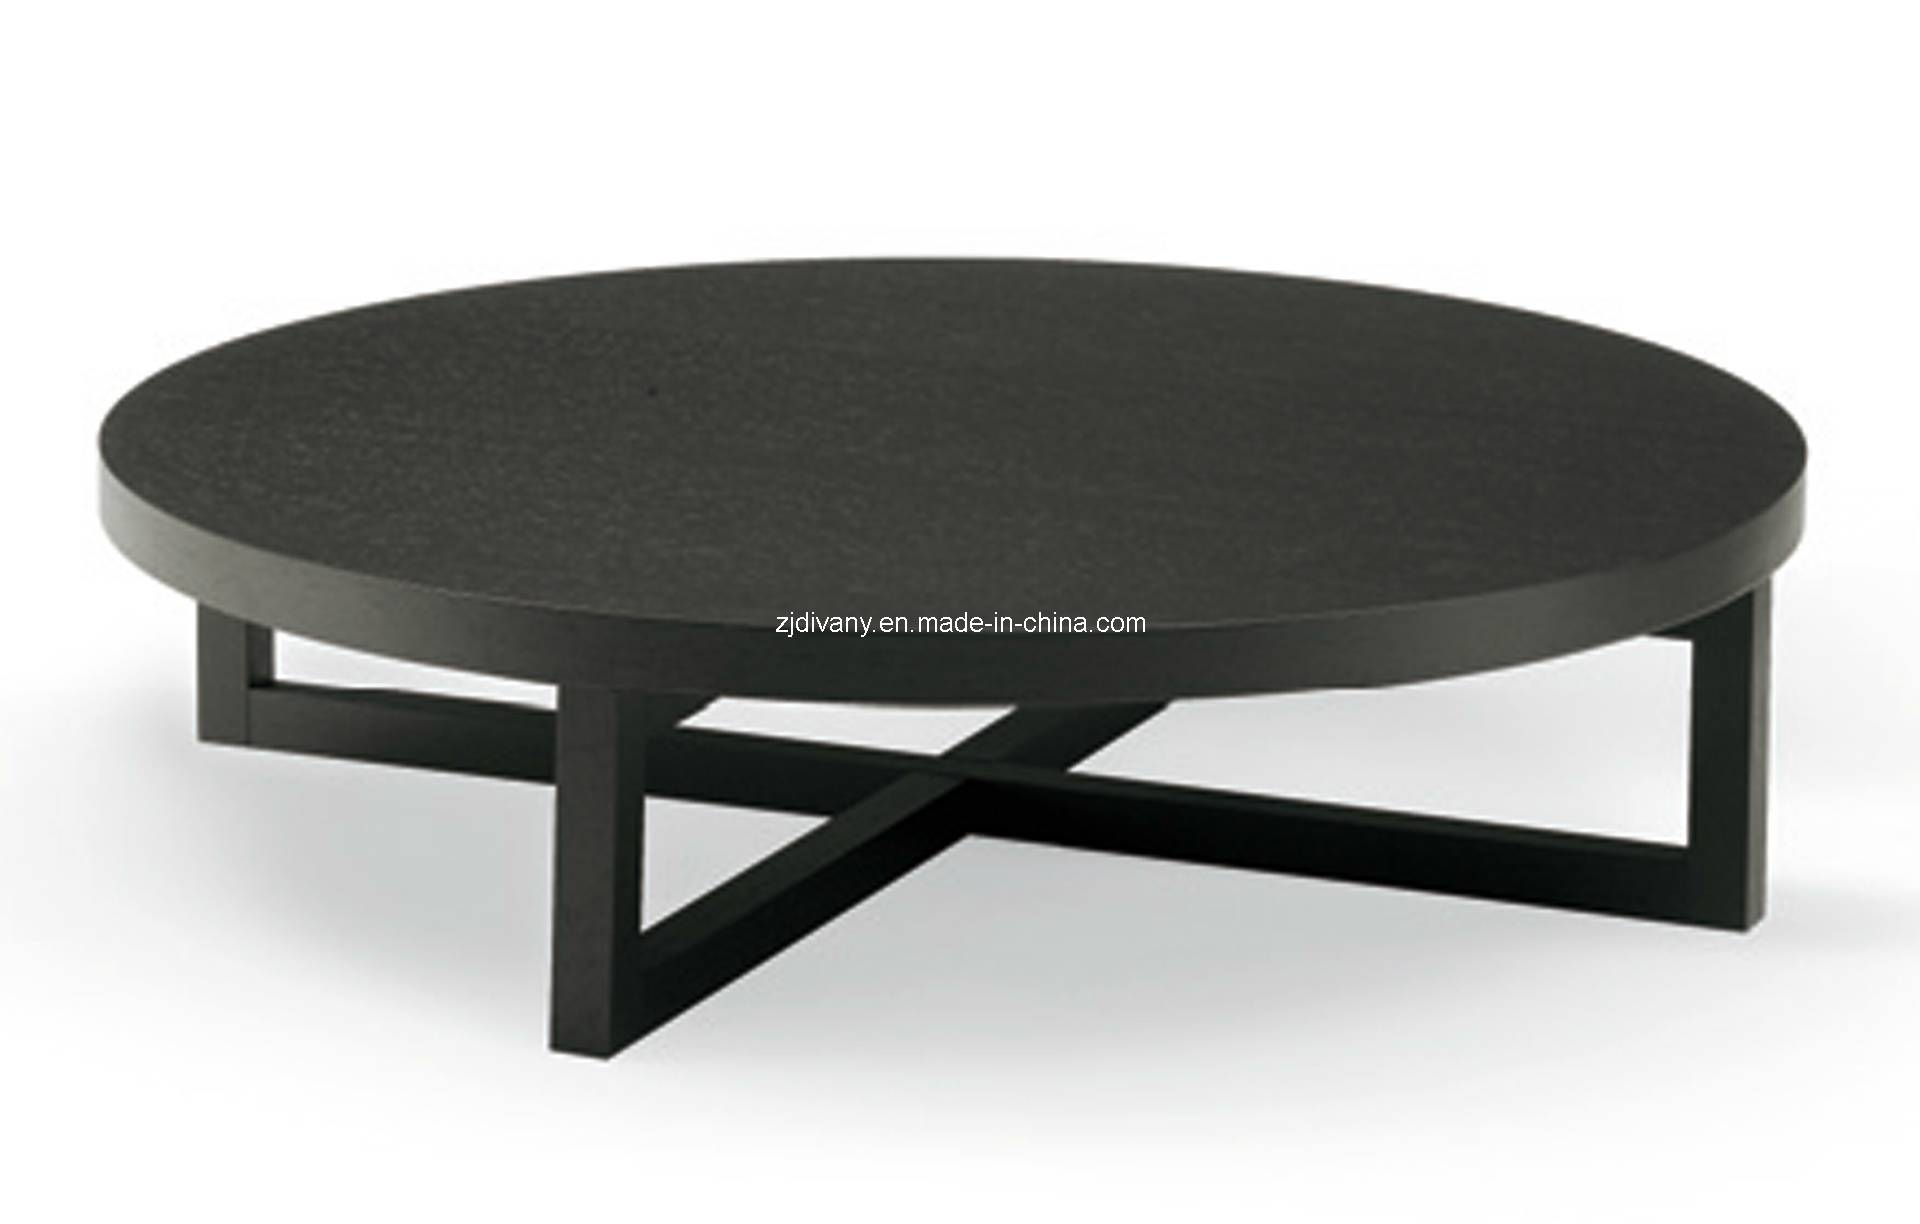 Small Circle Coffee Table. Small Round Coffee Table Ideas Image Of in Solid Round Coffee Tables (Image 26 of 30)